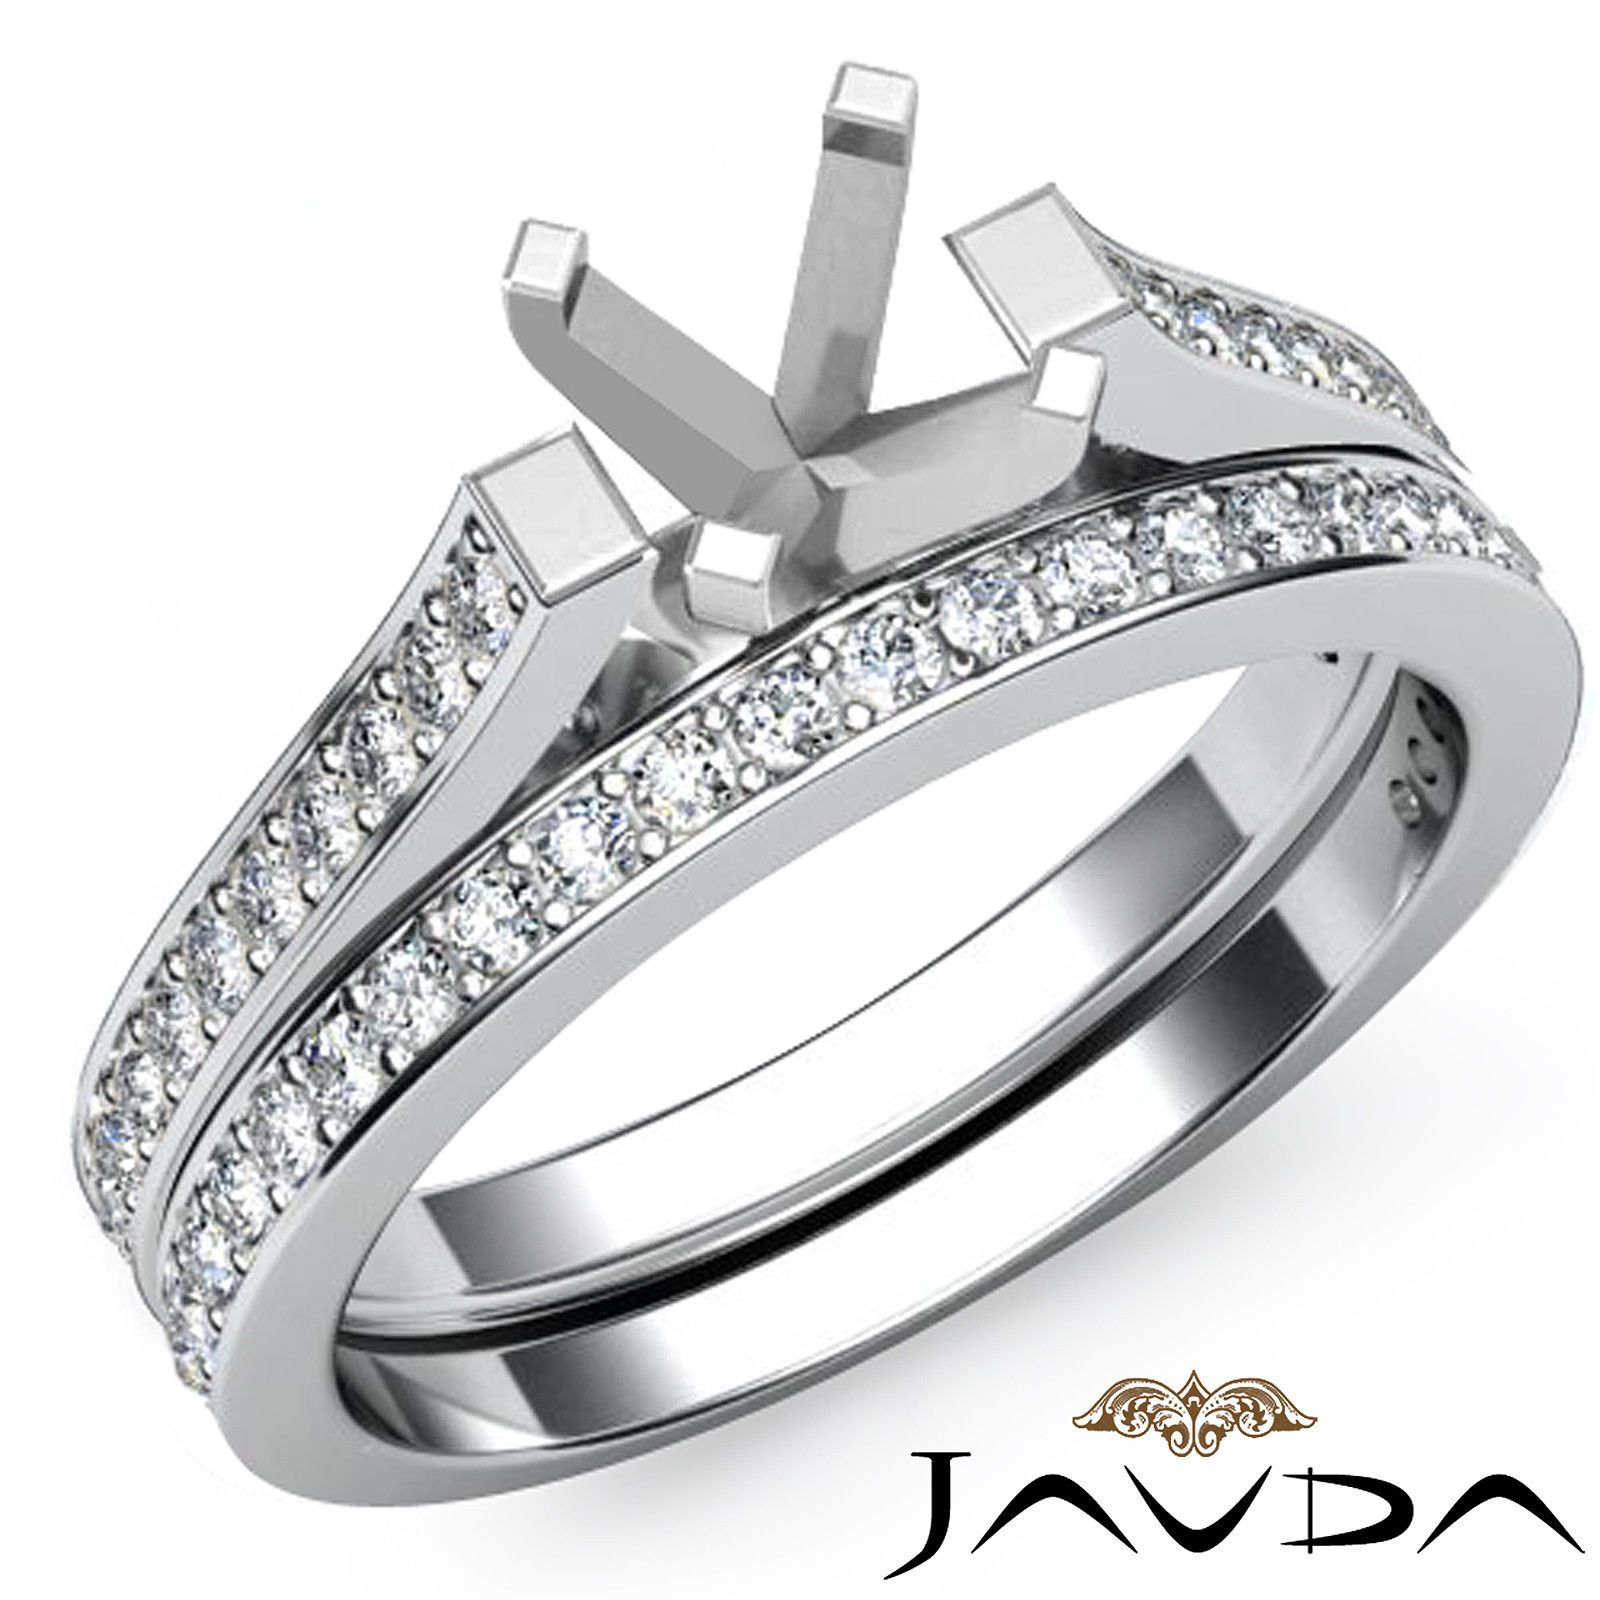 Pave Princess Diamond Engagement Bridal Ring Set Platinum 950 Semi Mount 0 57ct | eBay